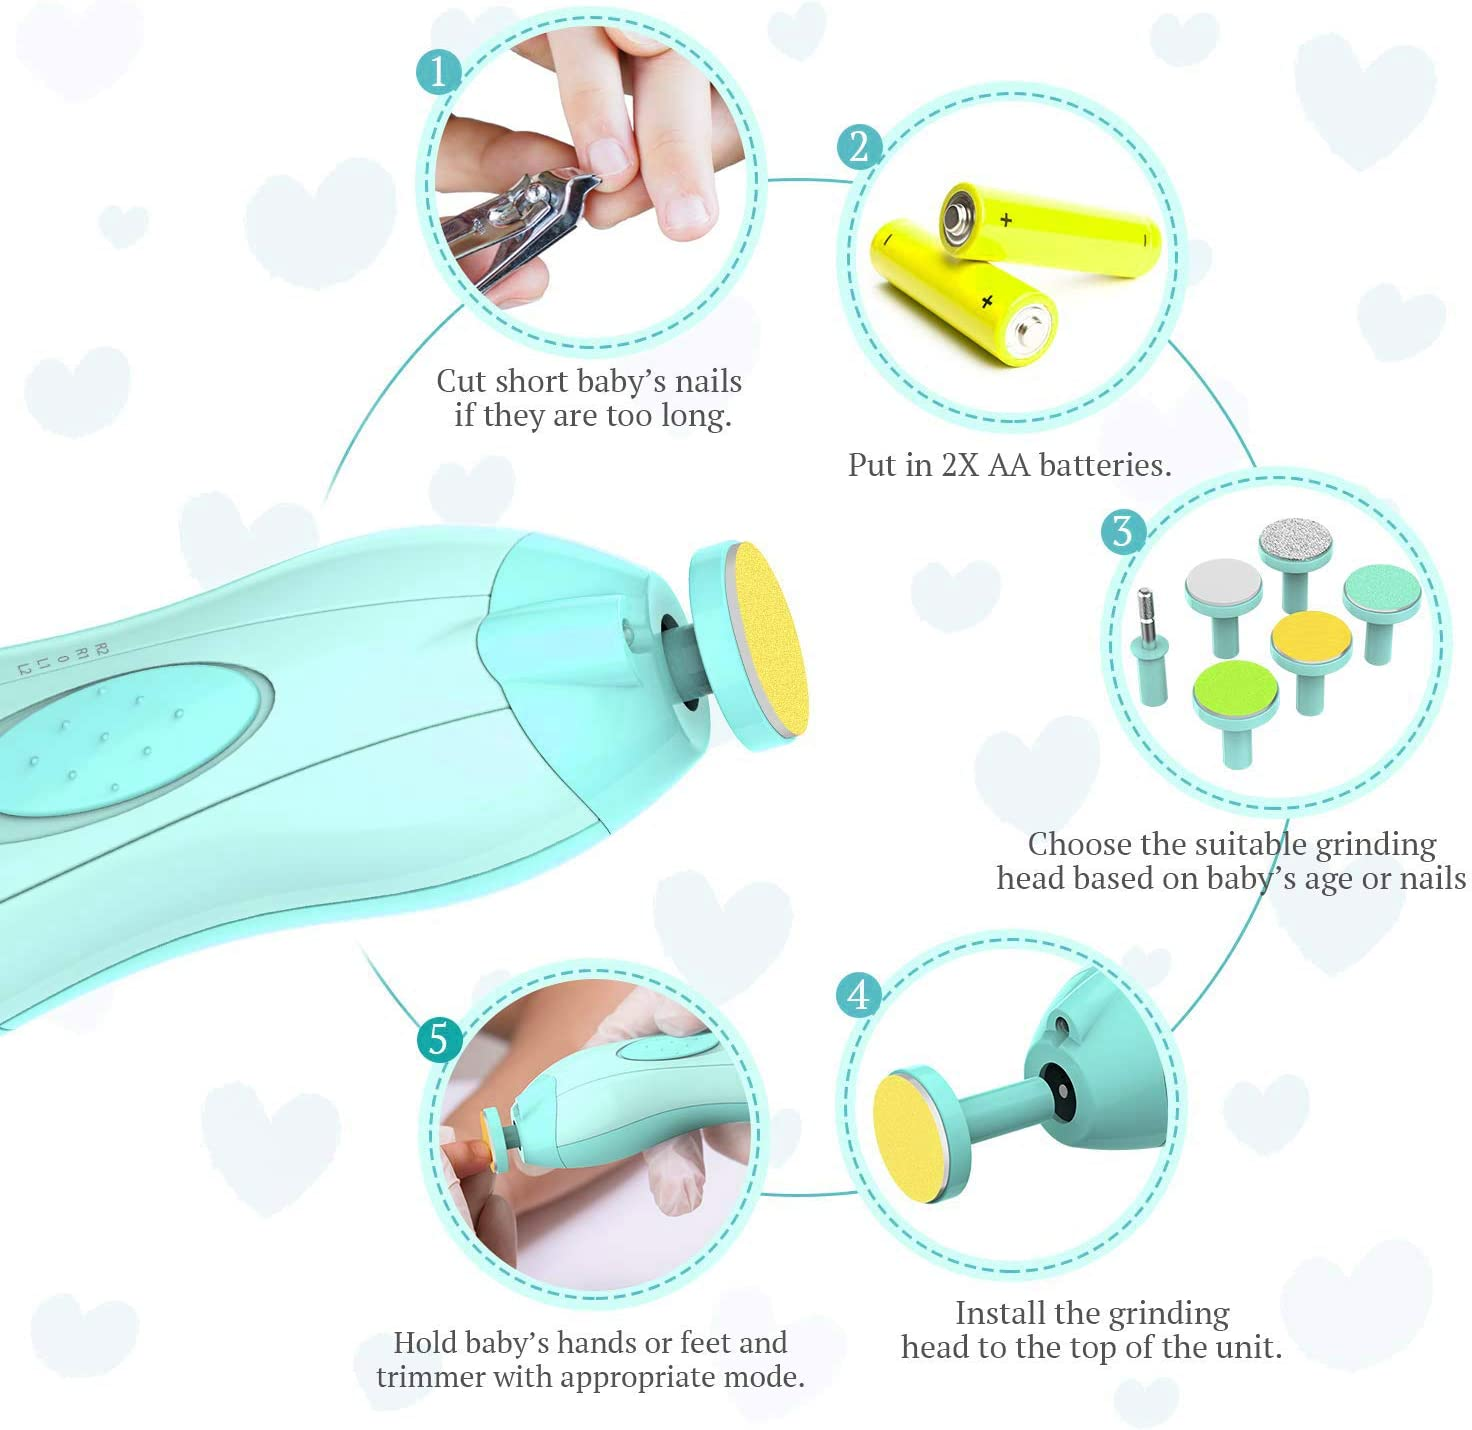 Baby Nail Trimmer, Zalaxy Safe Electric Baby Nail File Nail Clipper for Newborn or Toddler Kids Toes and Fingernails - Care, Polish and Trim (1_Sky Blue)